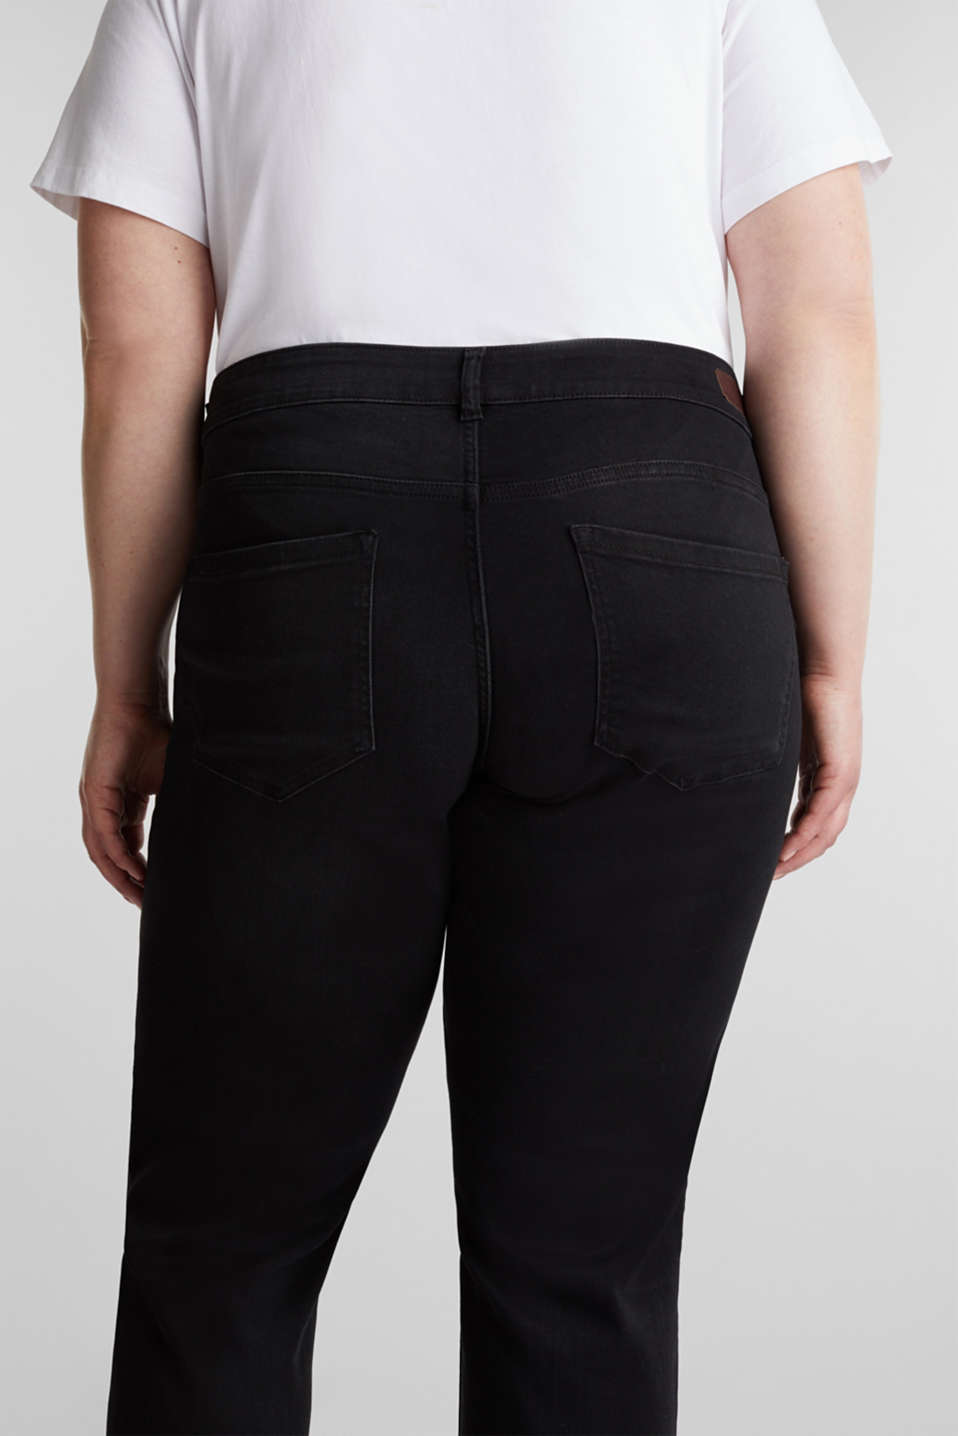 CURVY stretch jeans in a dark wash, BLACK DARK WASH, detail image number 2